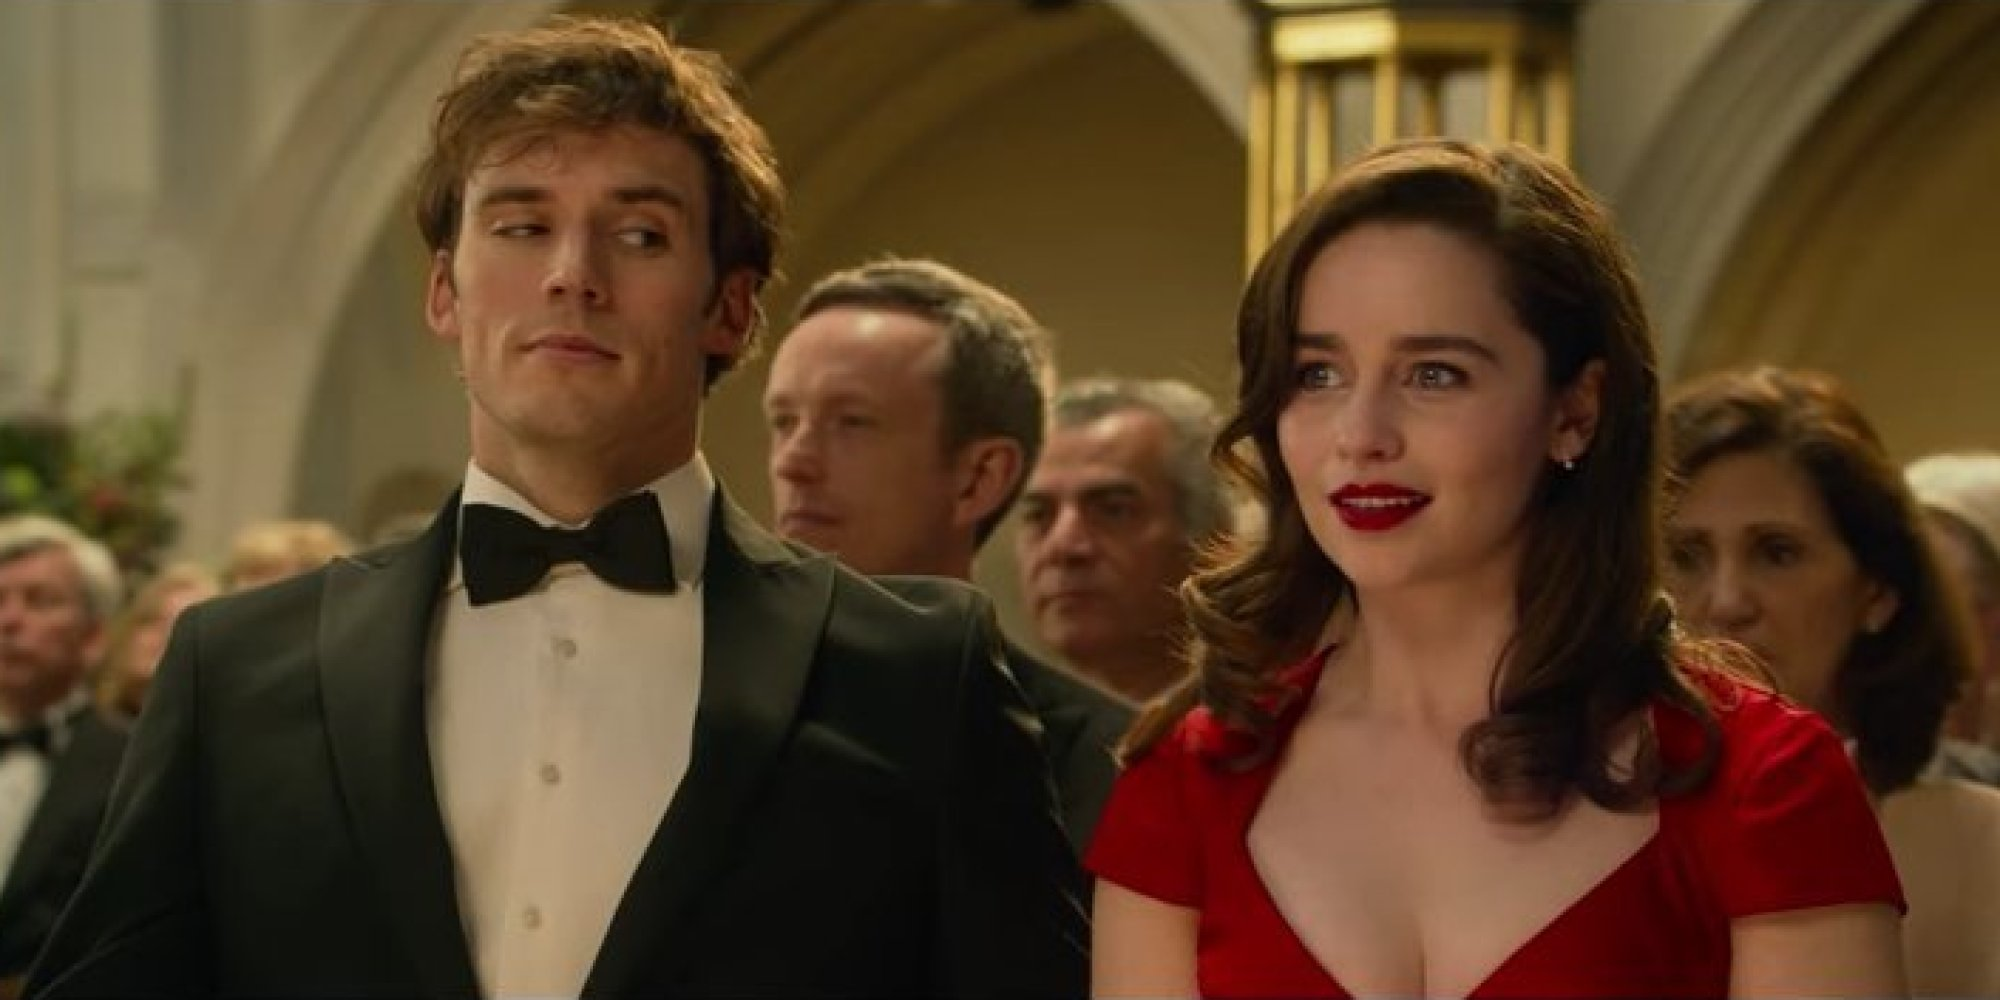 Me Before You Quotes Inspiration Why Are You Complaining Some People Actually Feel That Way' A